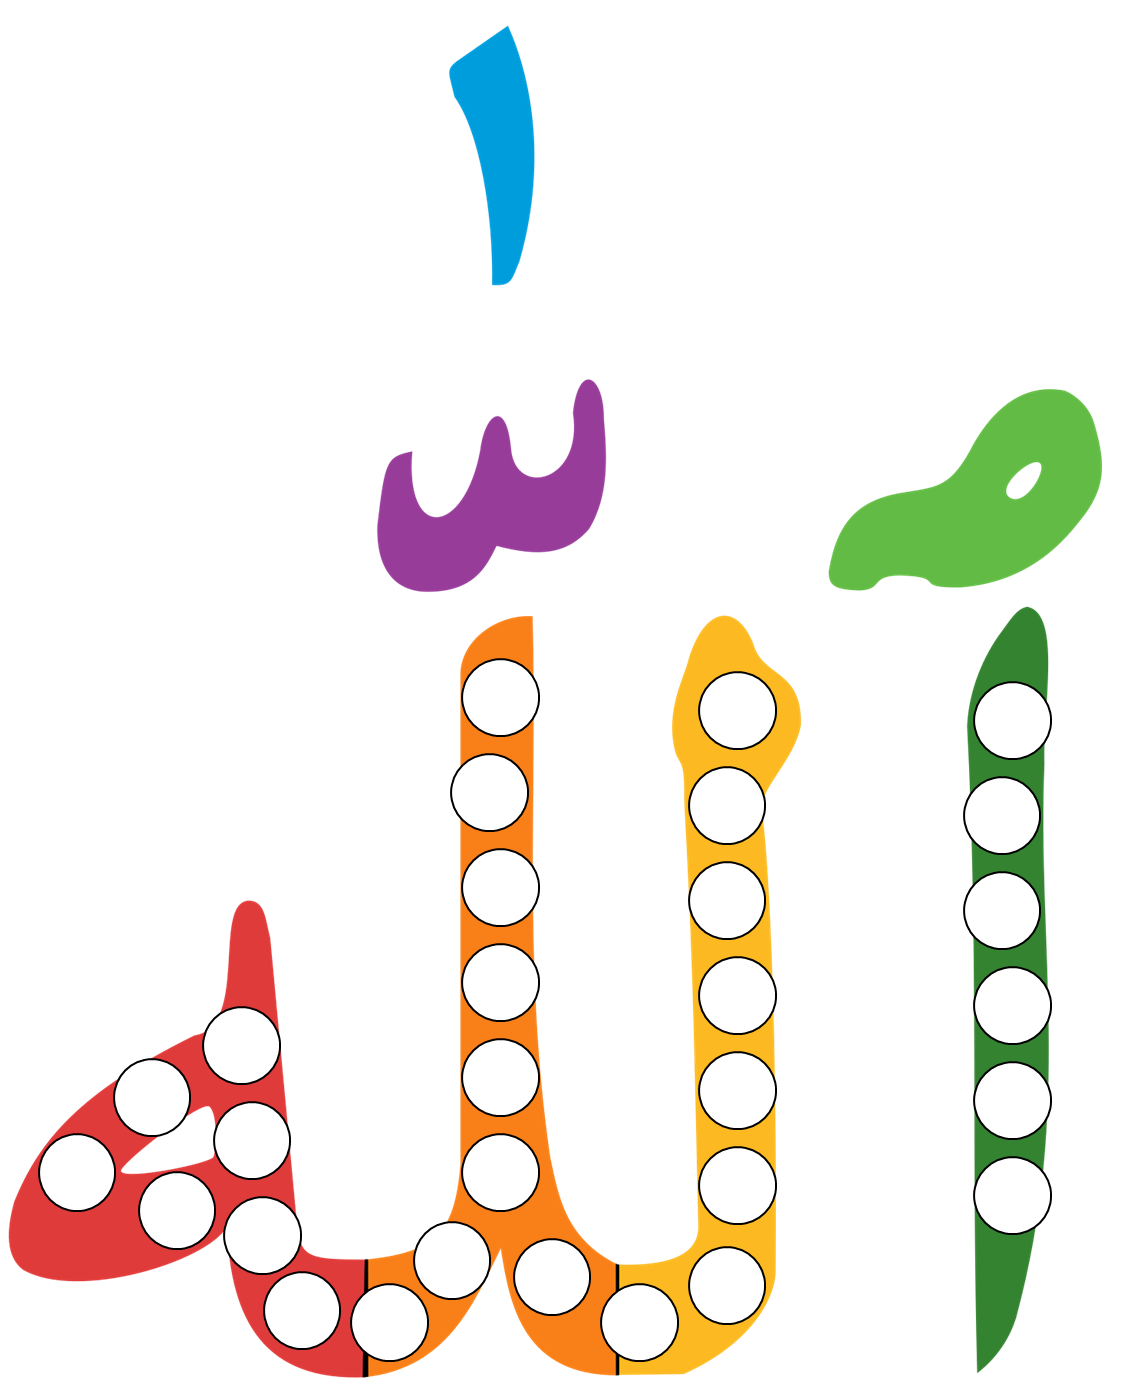 Free Dot Marker Sheet For Allah S Name With Rainbow Color